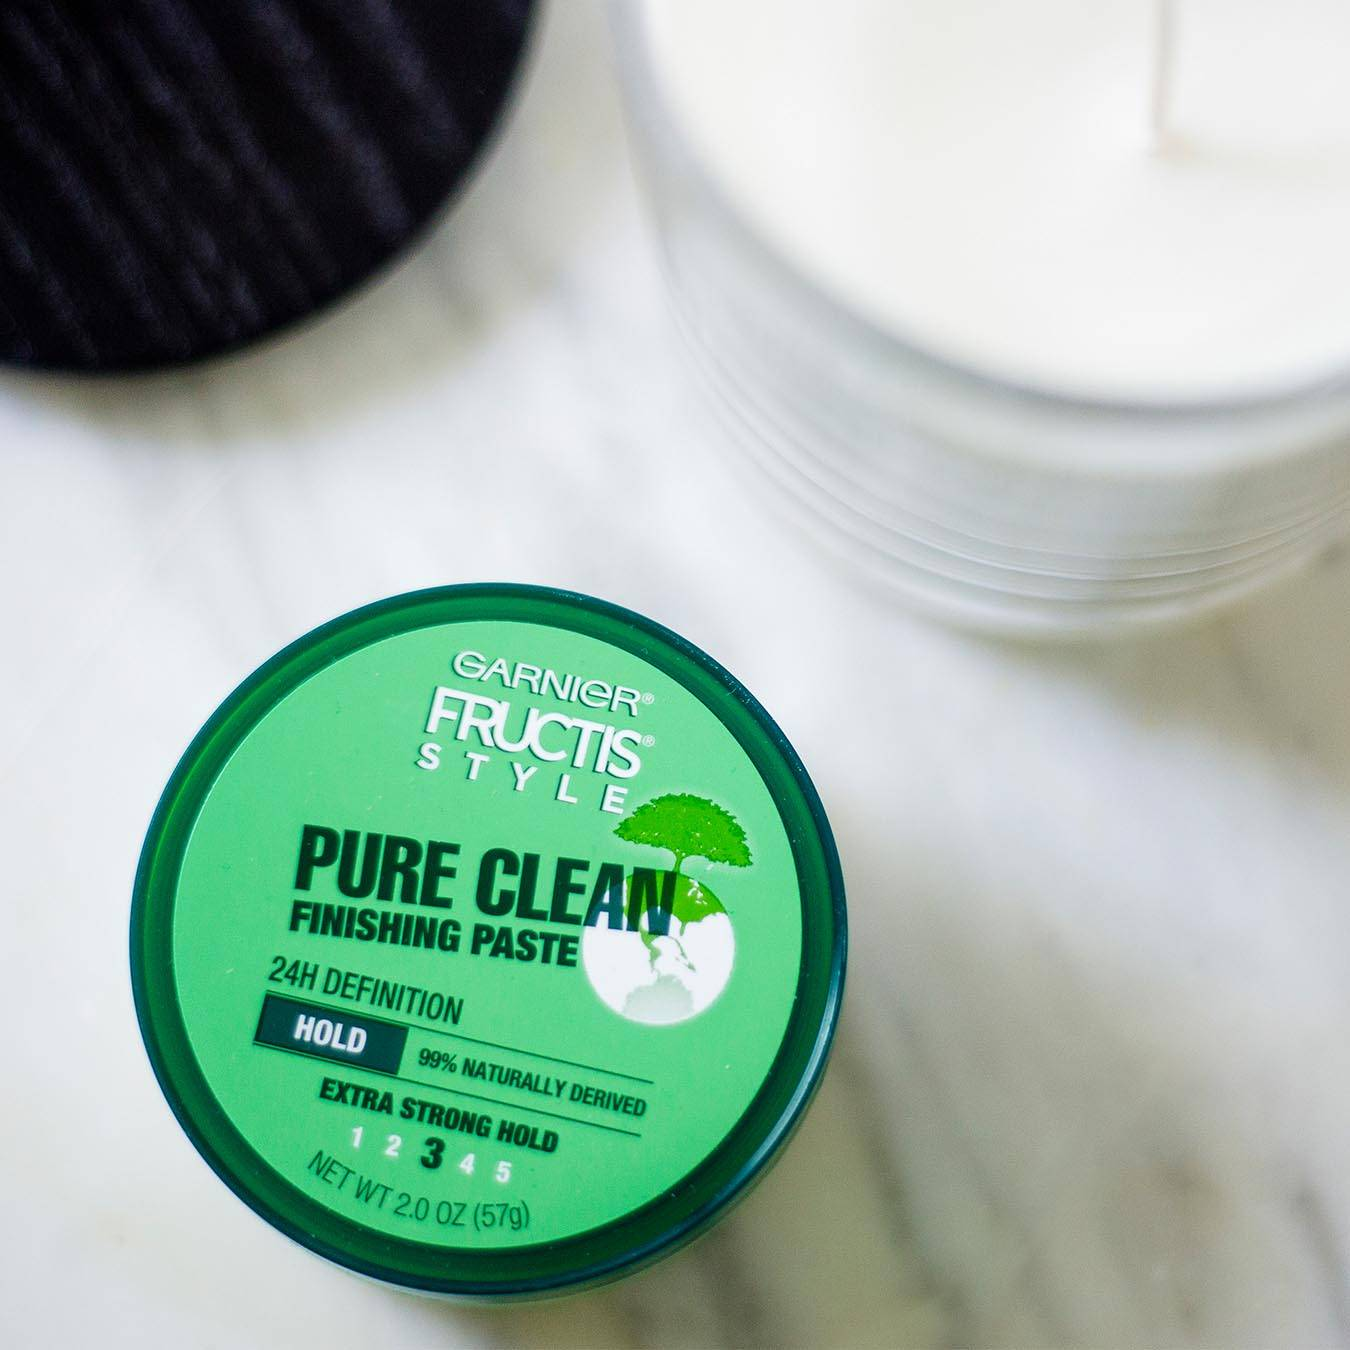 Garnier Fructis Style Pure Clean Finishing Paste on white marble next to a white candle and black lid.